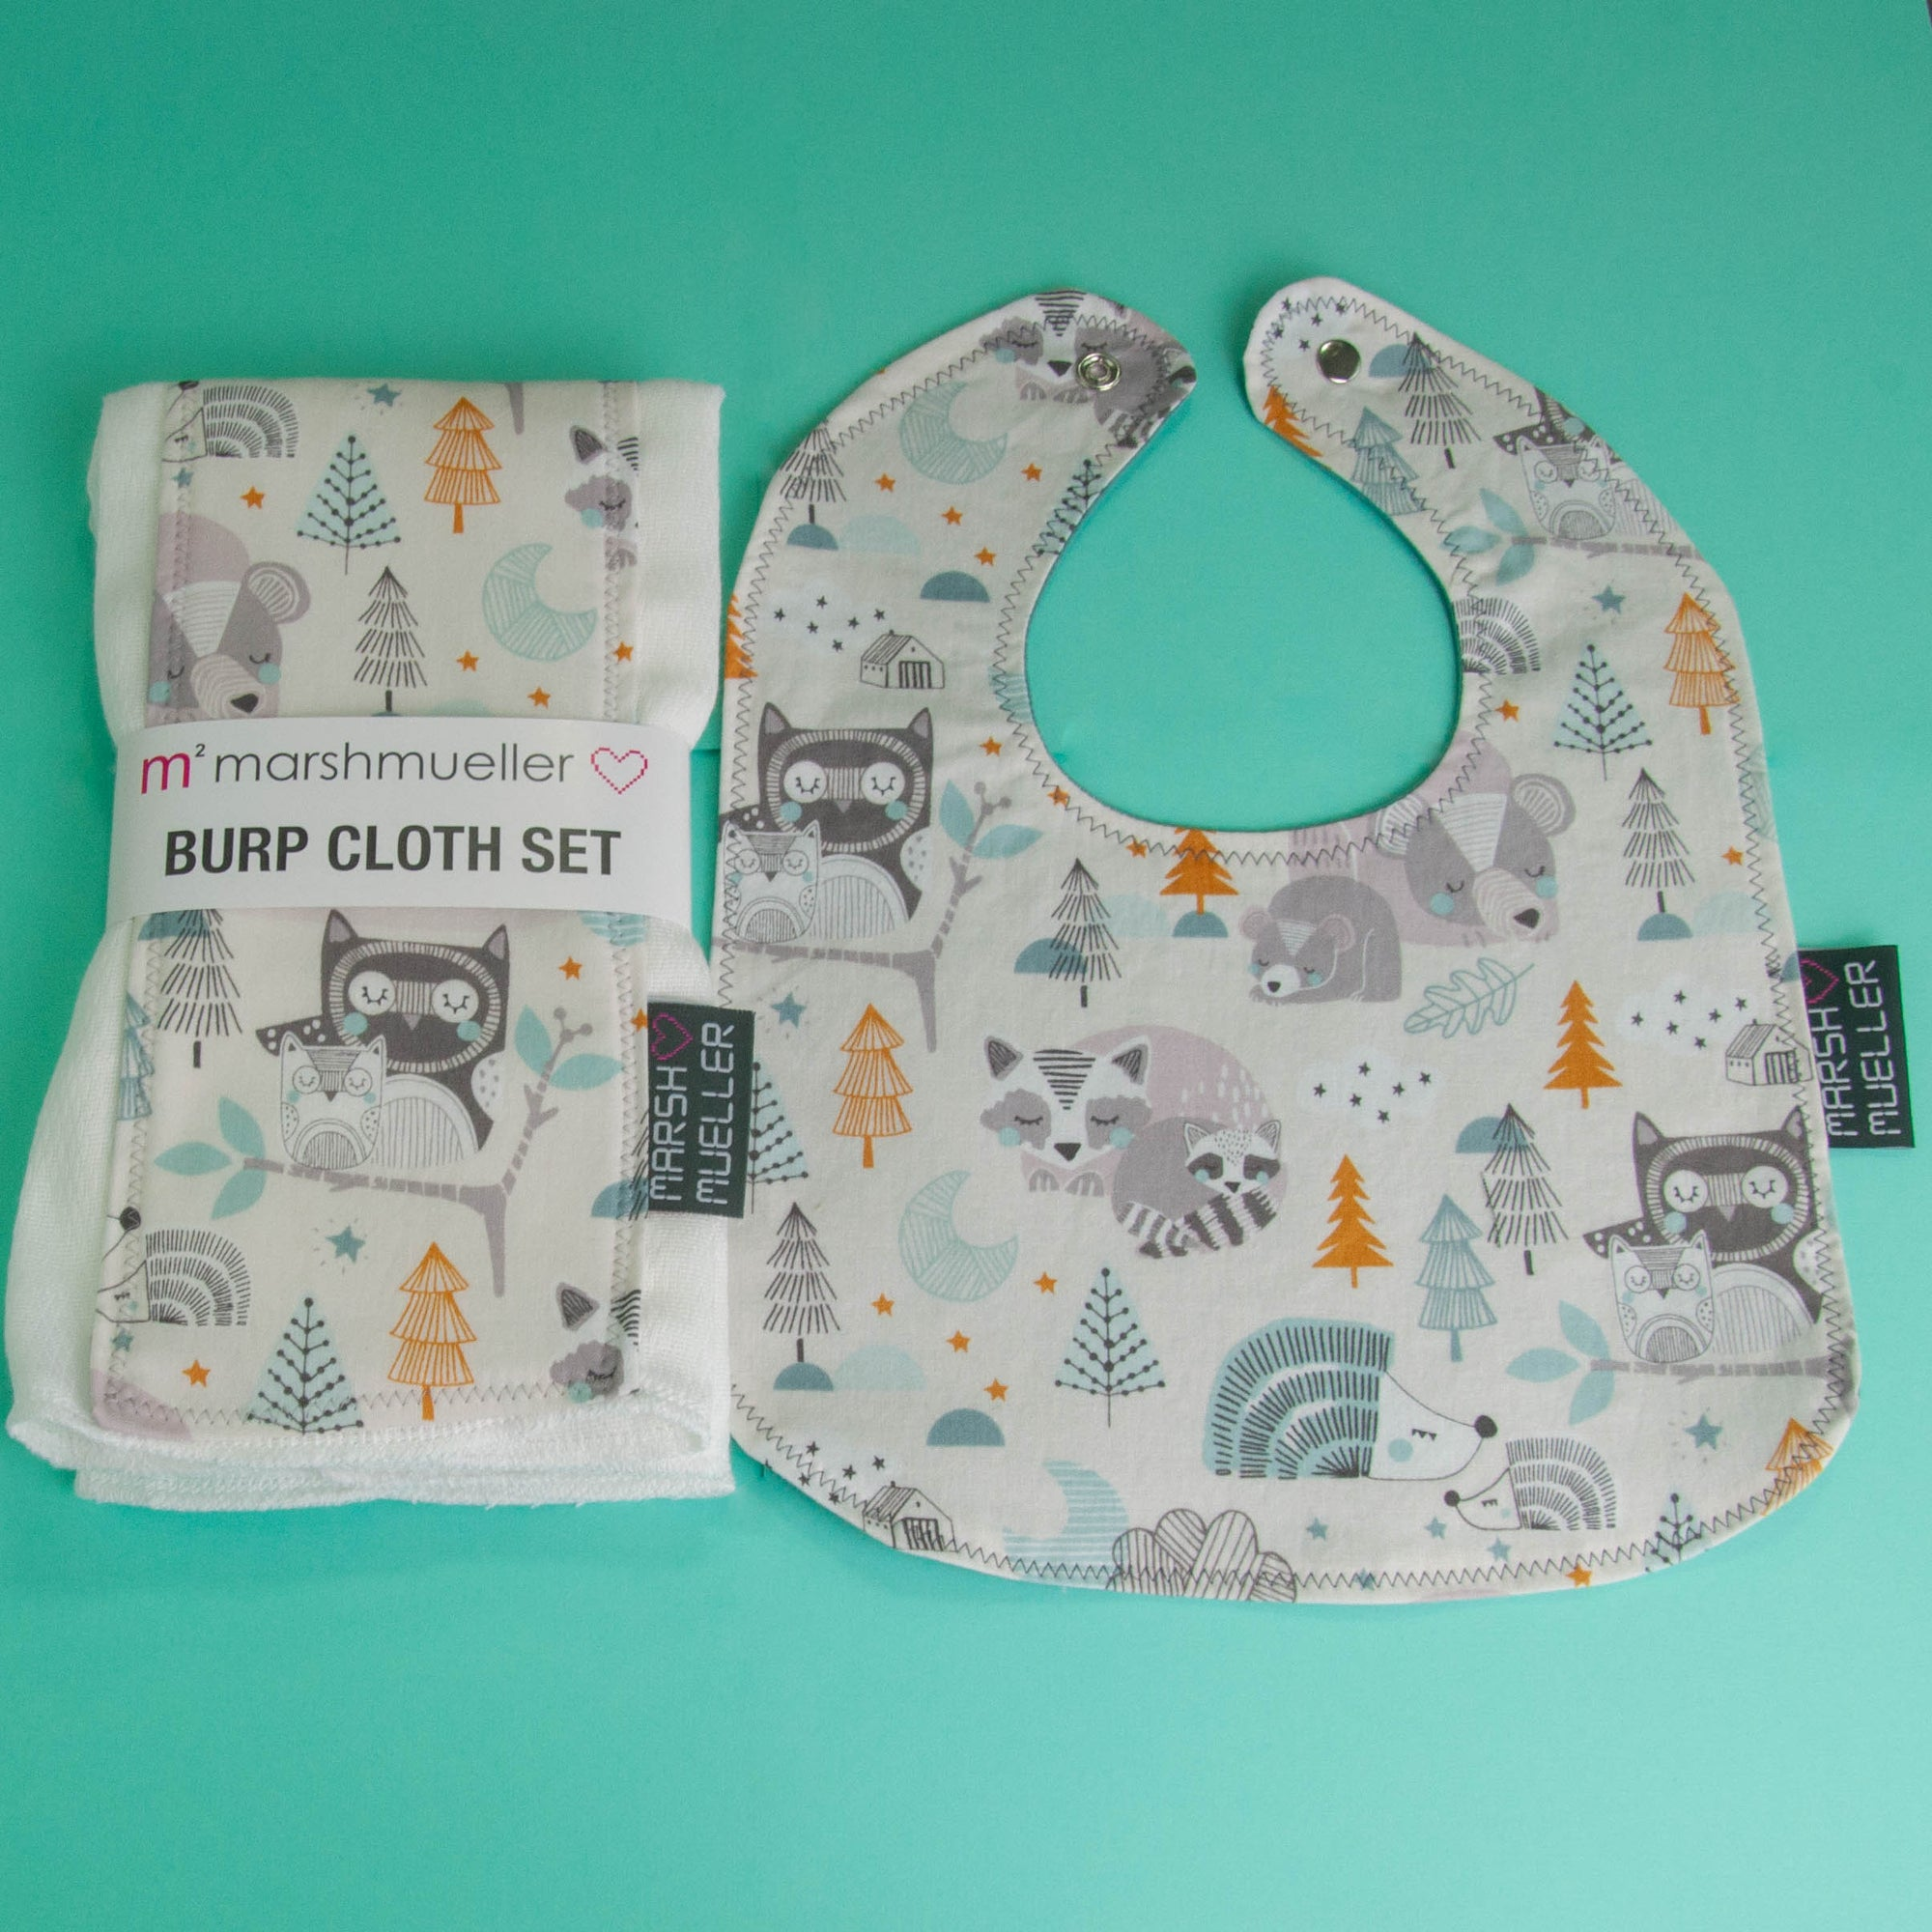 Image of Marshmueller Bib and Burp Cloth Set flatlay on a seafoam green background. The Bib and Burp Cloth Set are made from a woodland animals print fabric that is grey, teal, and mustard.